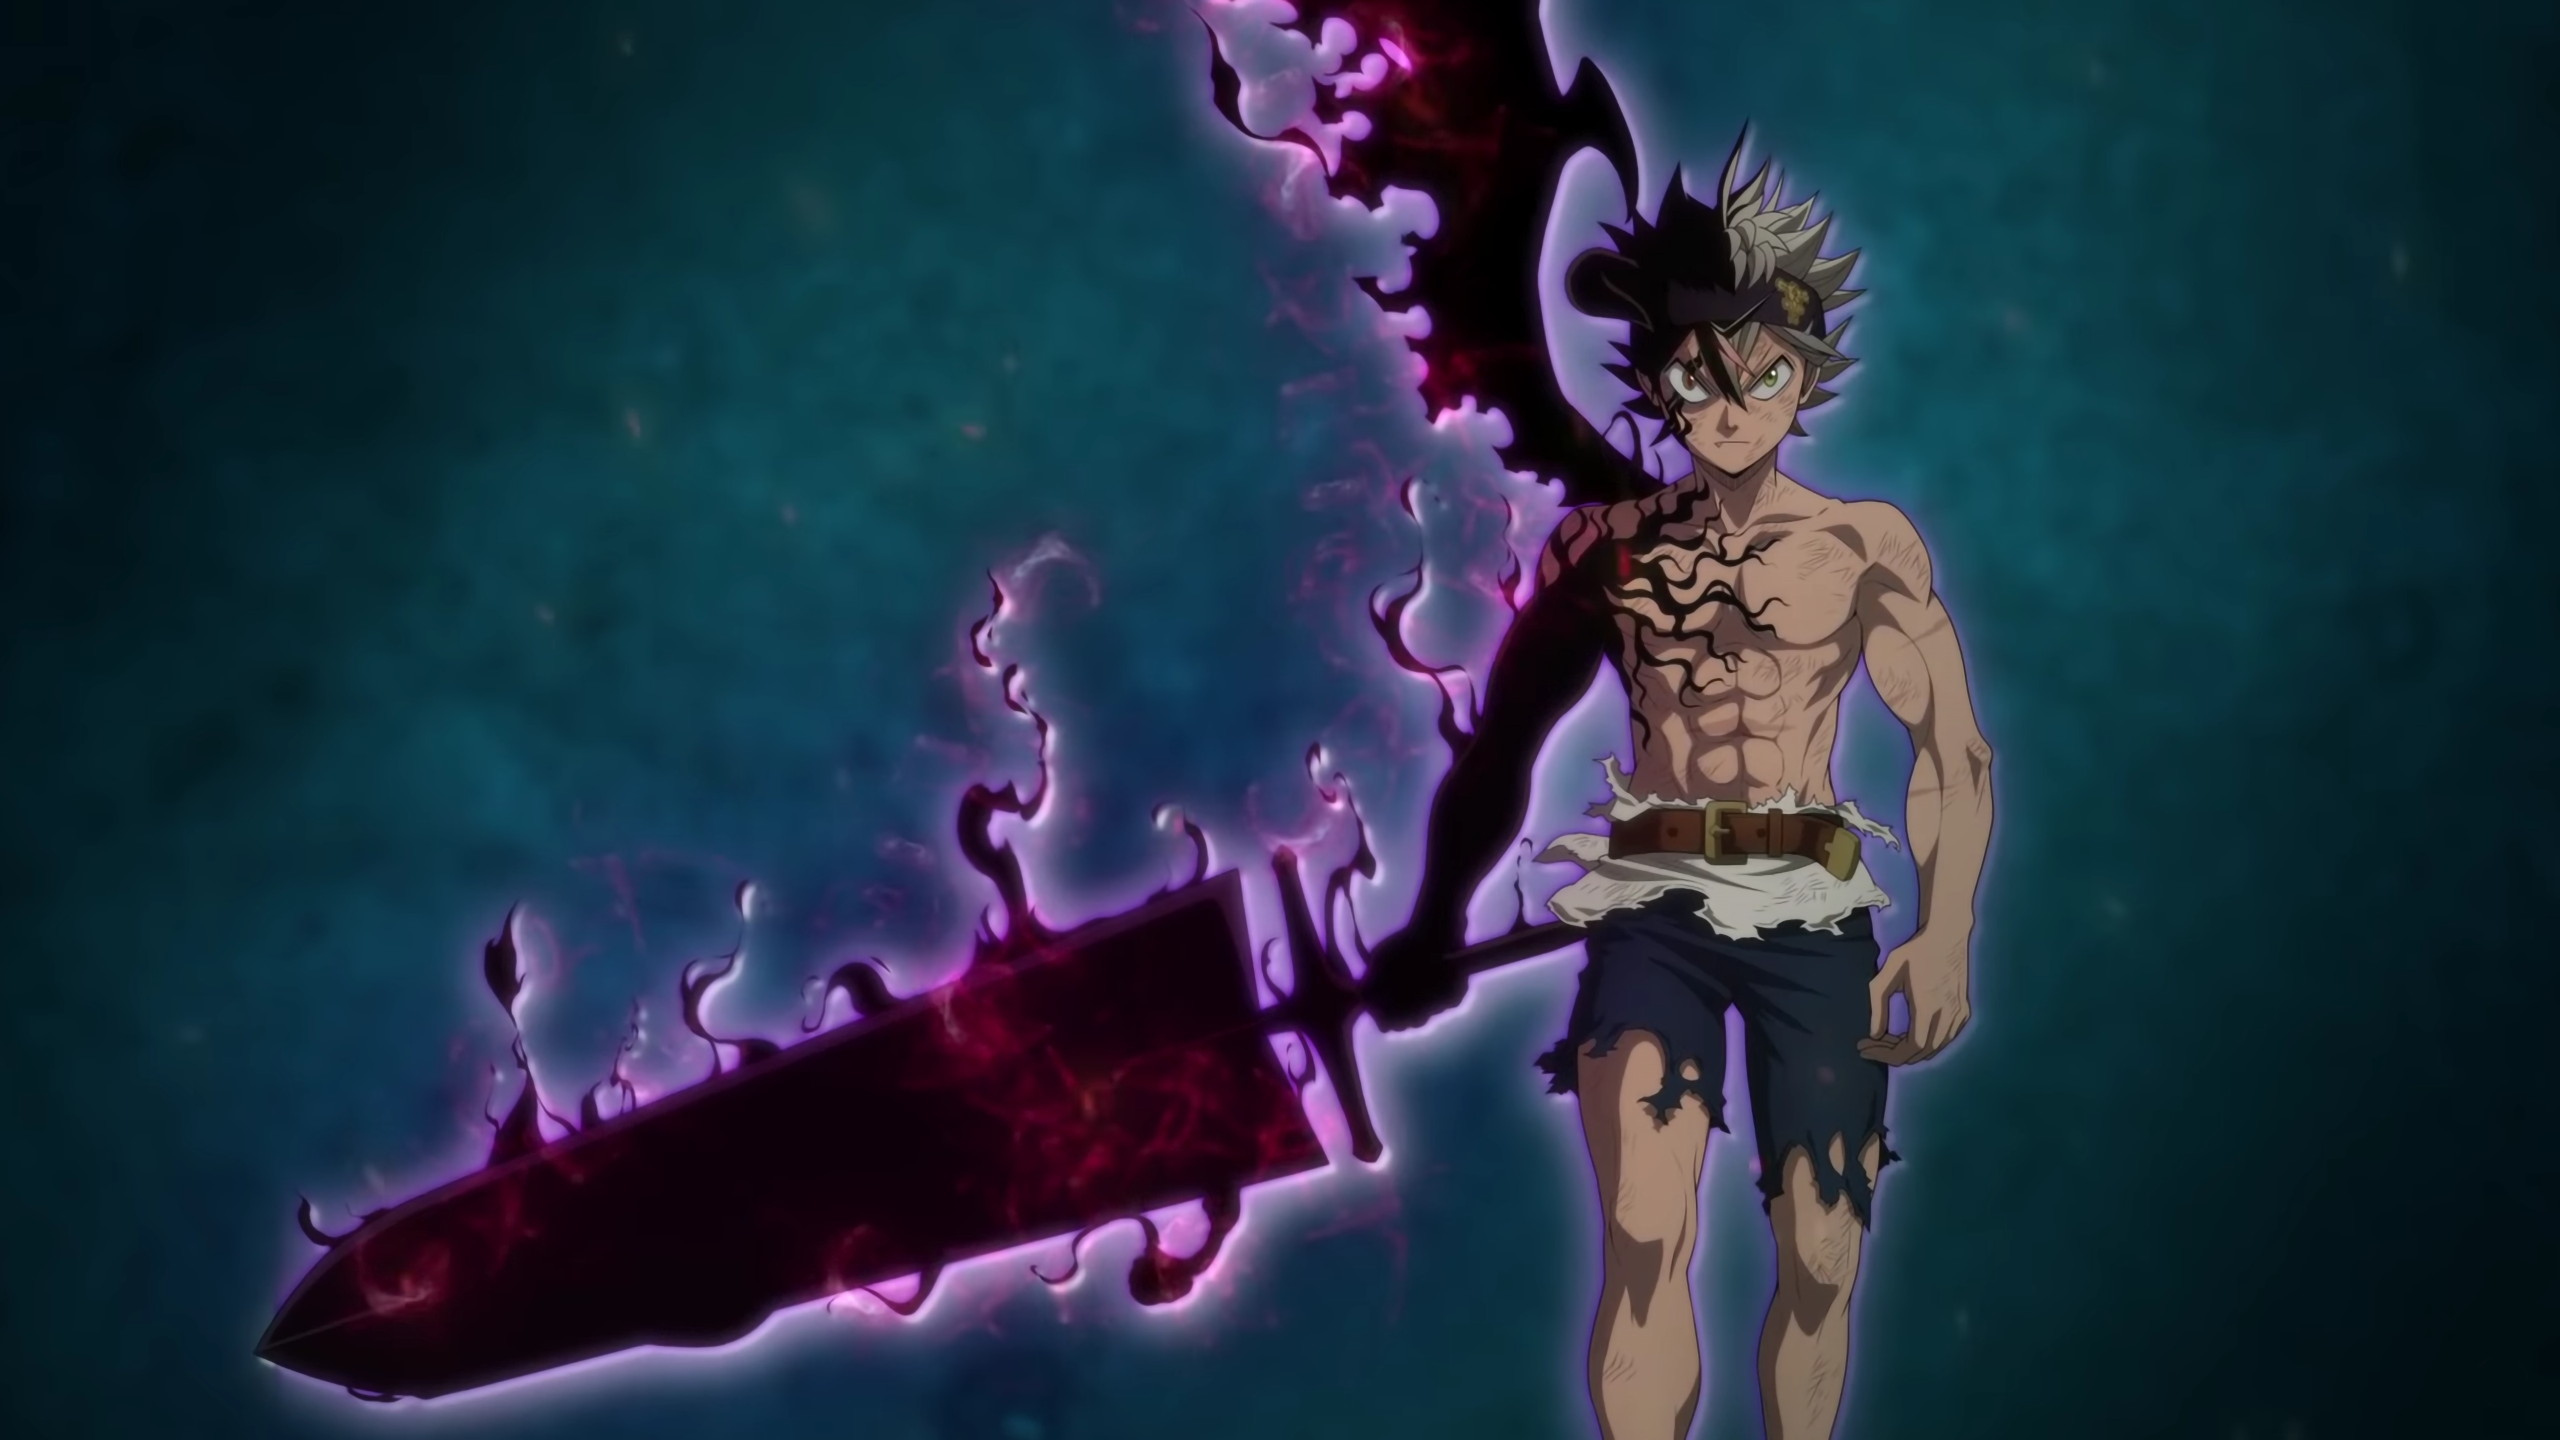 4000+ Wallpaper Hd Black Clover HD Paling Keren